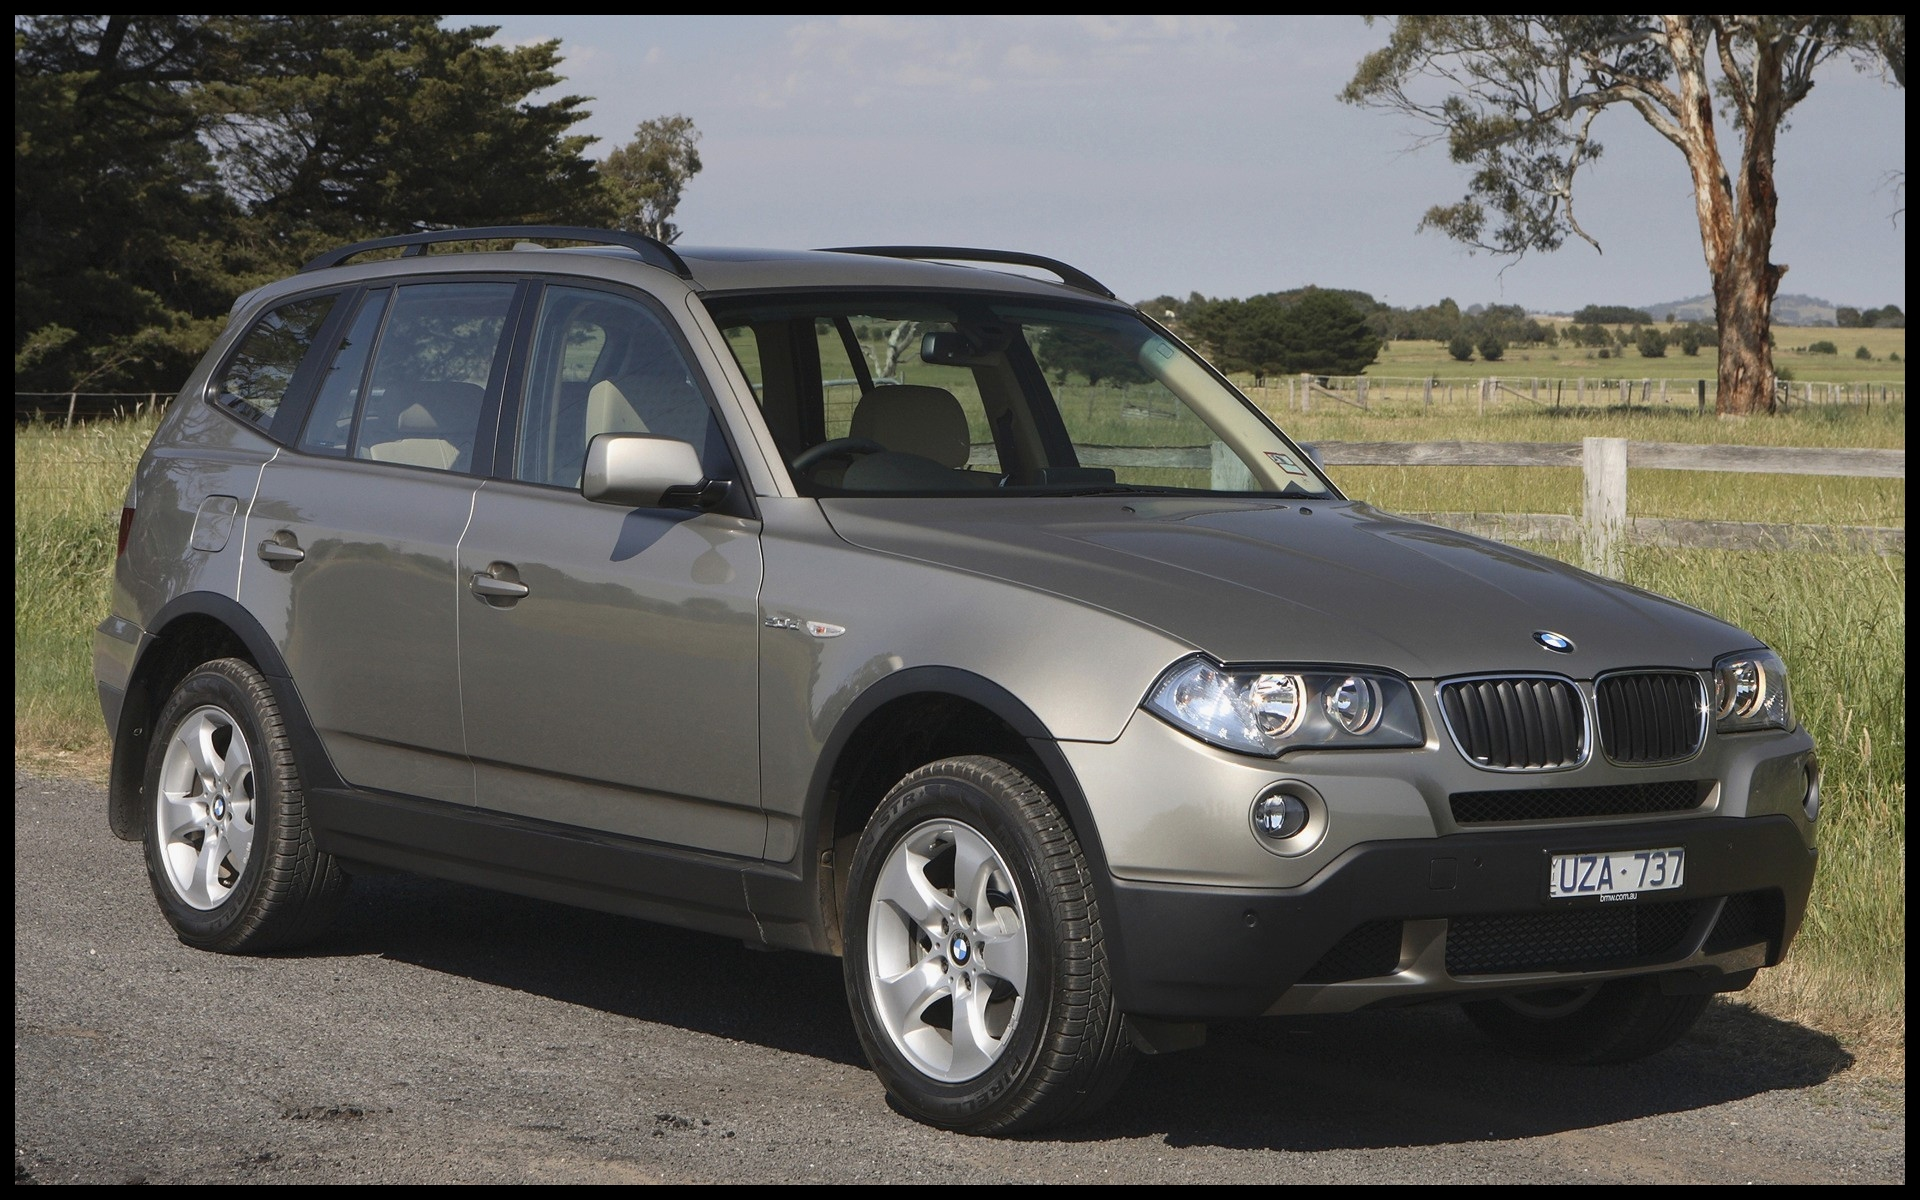 Wonderful Cars Hd Wallpapers Inspirational Beautiful Bmw X3 2 0d New Bmw Bike Hd Wallpaper